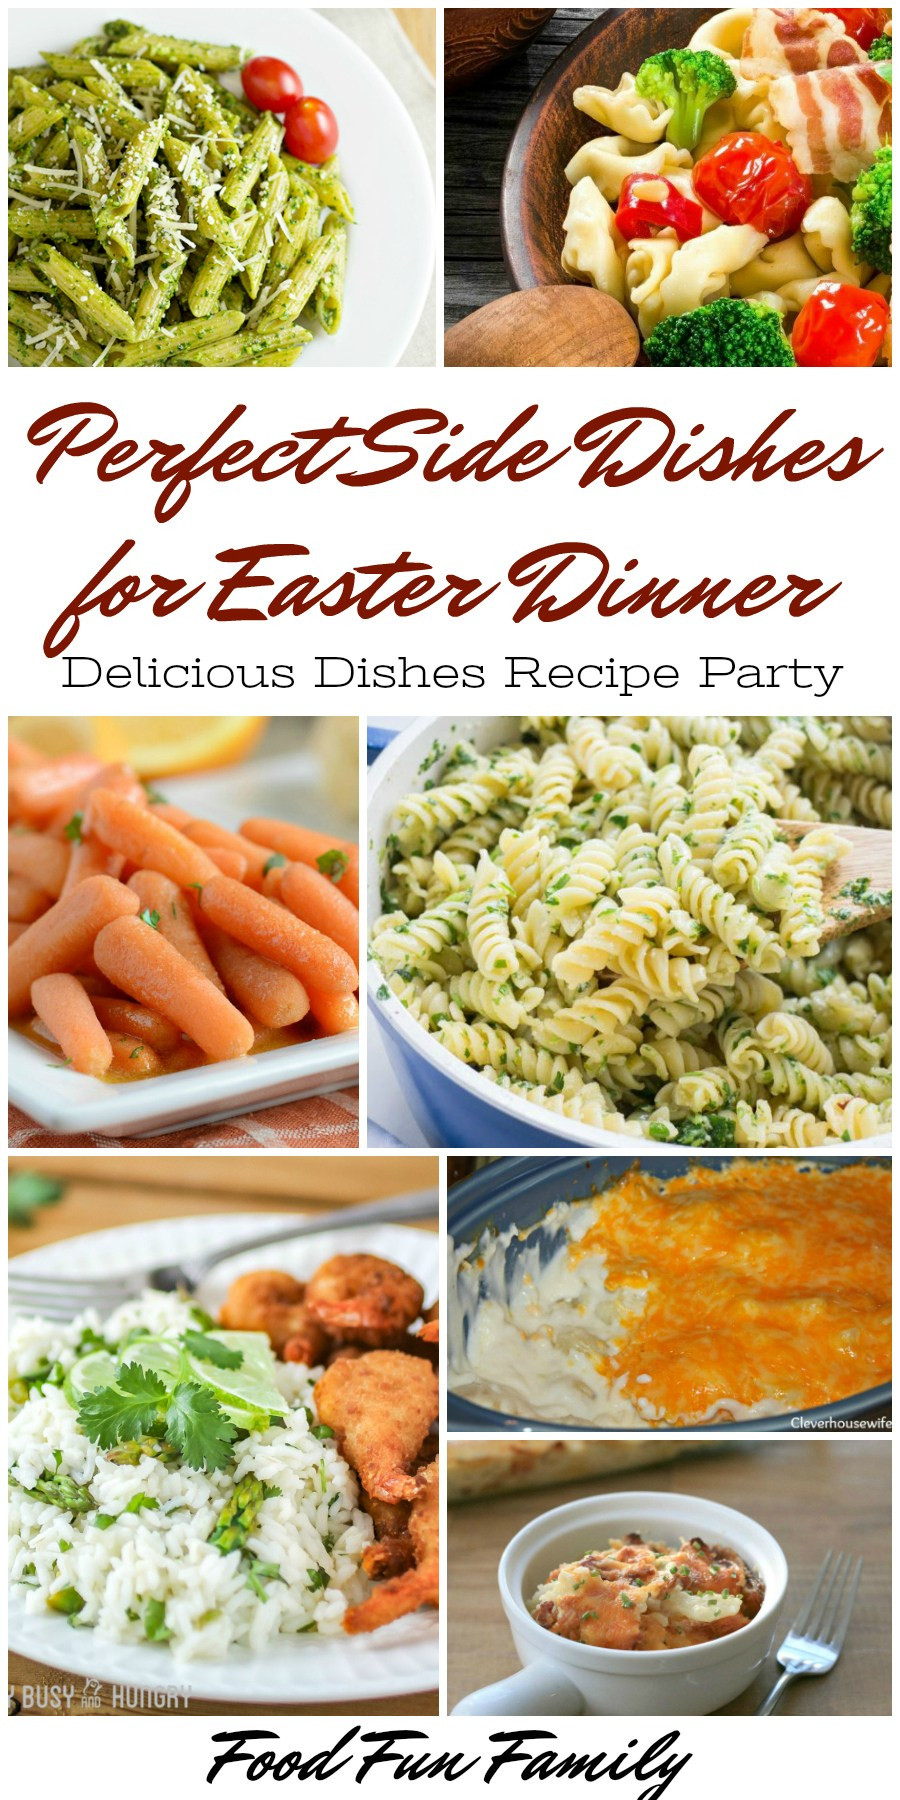 Side Dish For Easter Dinner  Perfect Side Dishes for Easter Dinner – Delicious Dishes